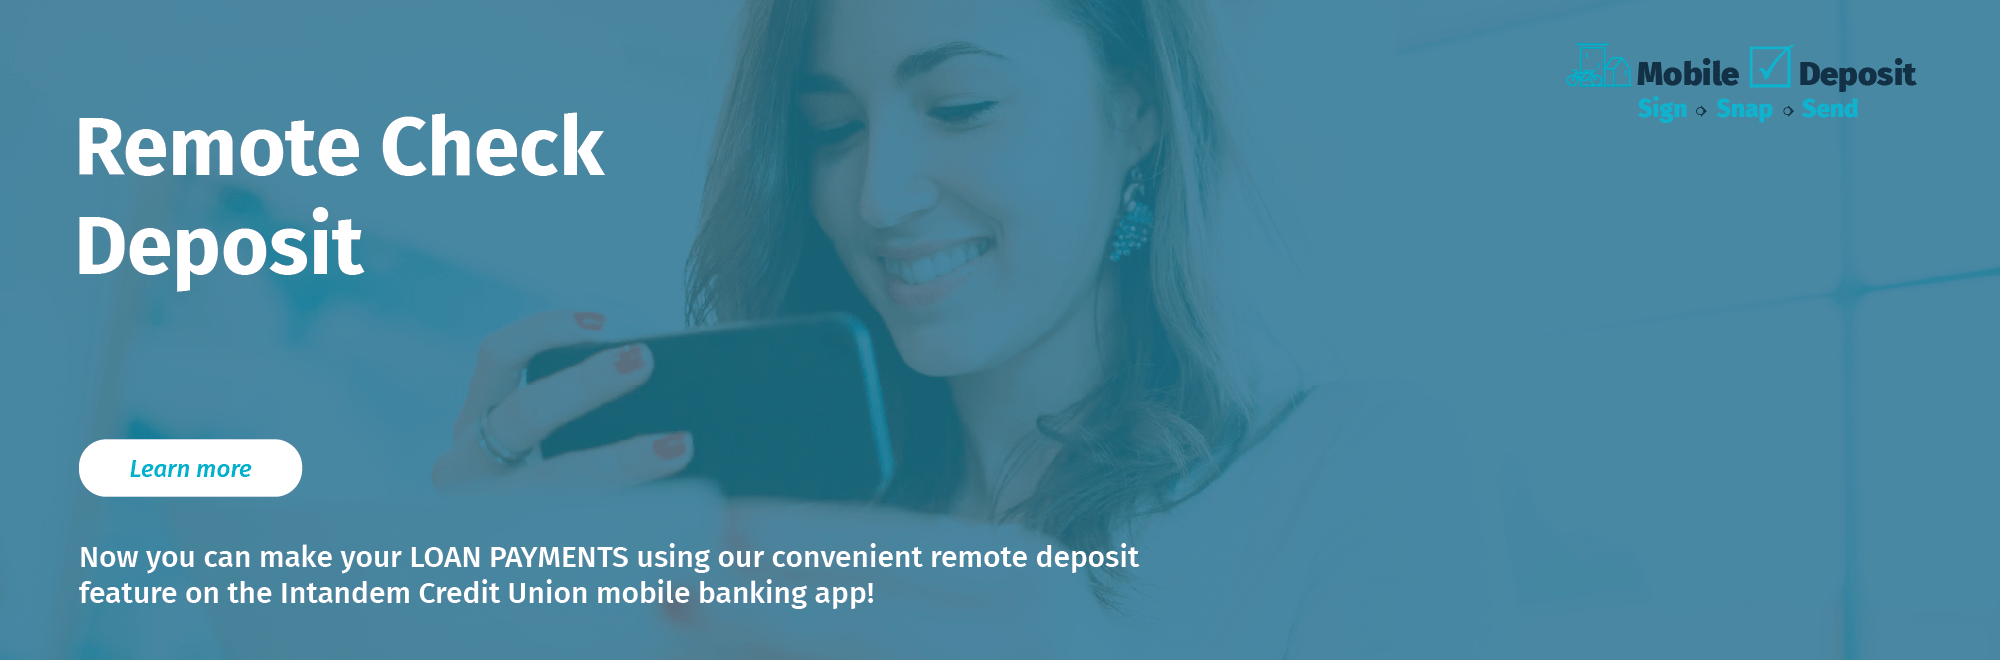 Now you can make your LOAN PAYMENTS using our convenient remote deposit feature on the Intandem Credit Union mobile banking app.